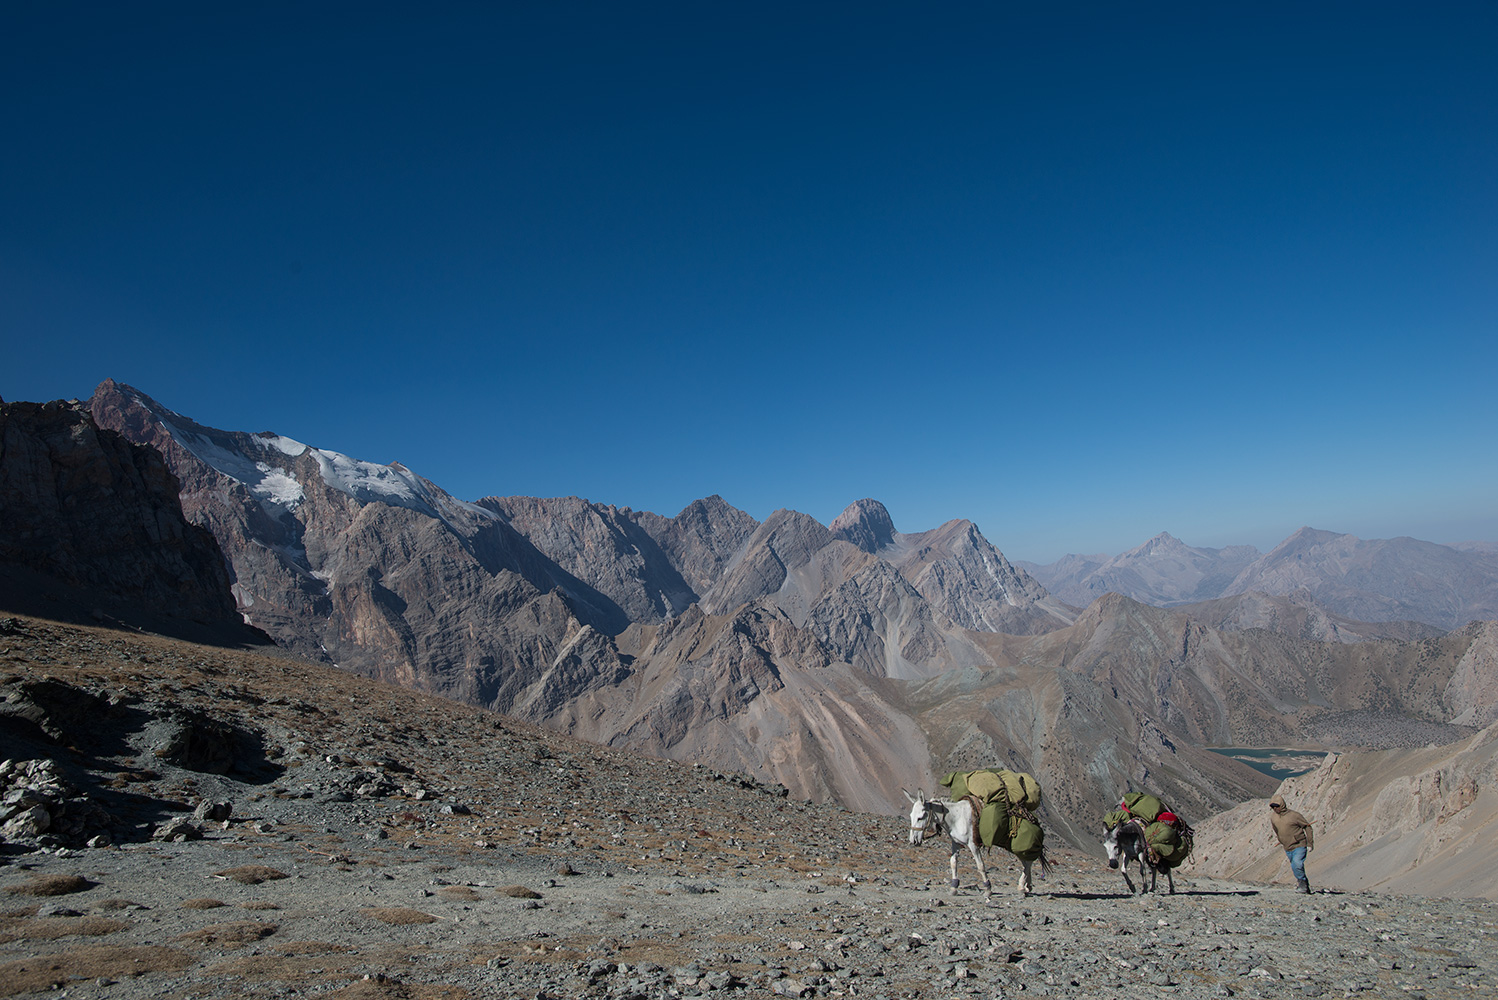 Mirali (5120m) on the left, Peak Moscow (5049m) right of centre, Kulikalon Lakes below.